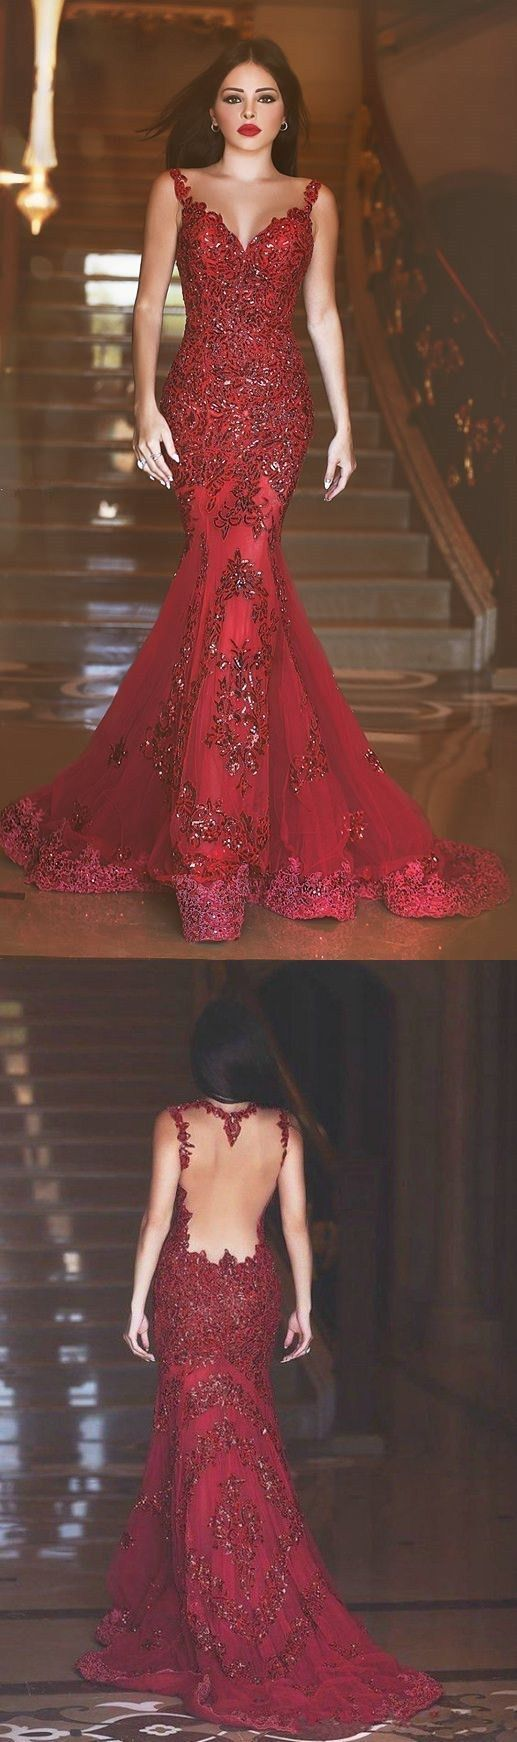 Burgundy Prom Dresses,Lace Prom Gown,mermaid Prom Gowns,Simple Evening